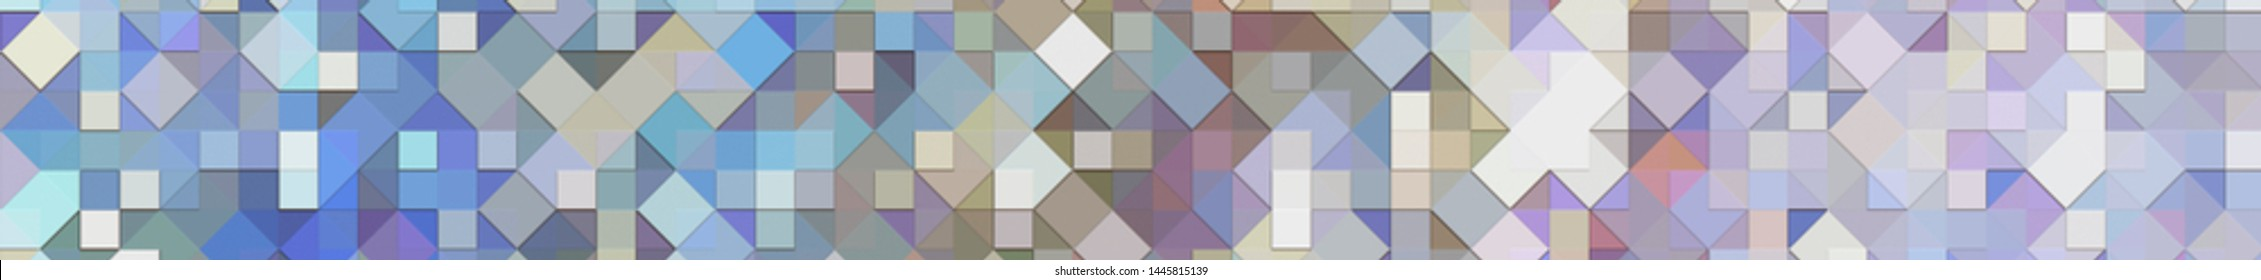 Panoramic multicolored background texture with mosaic. Geometric mosaic design. Abstract color trendy background. Mosaic texture with geometric shapes.